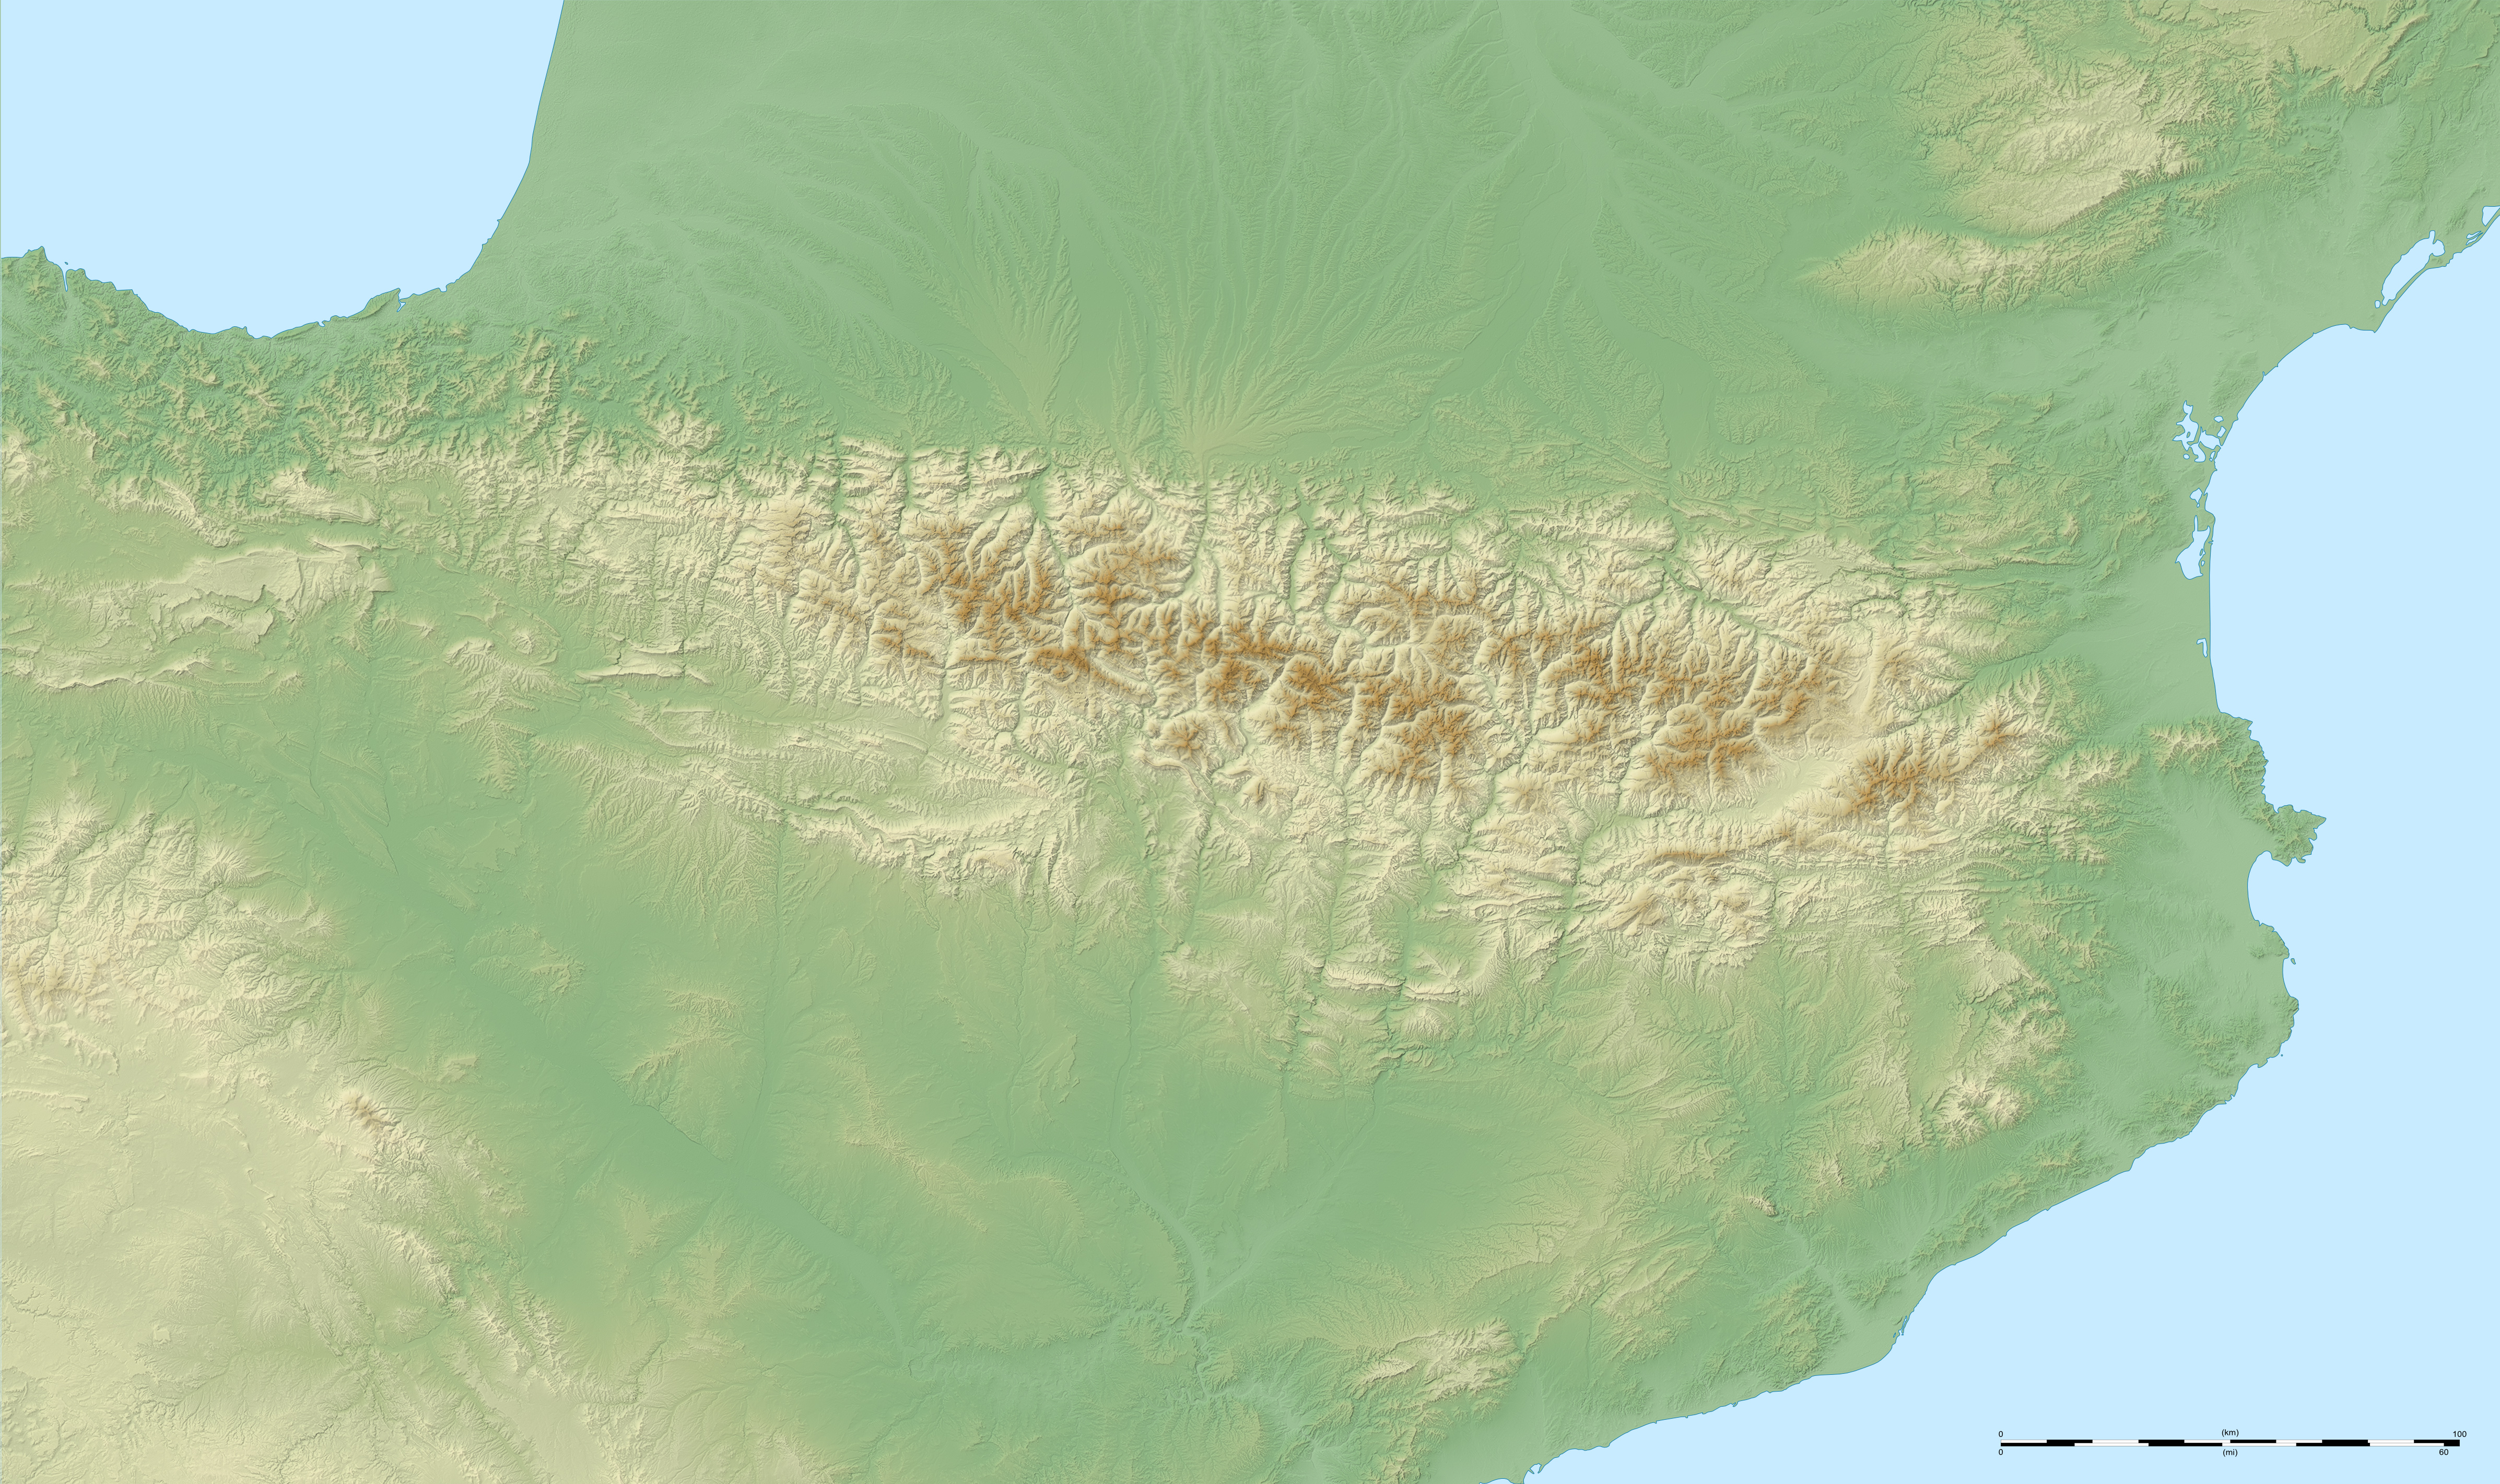 File:Pyrenees topo map blank.   Wikimedia Commons